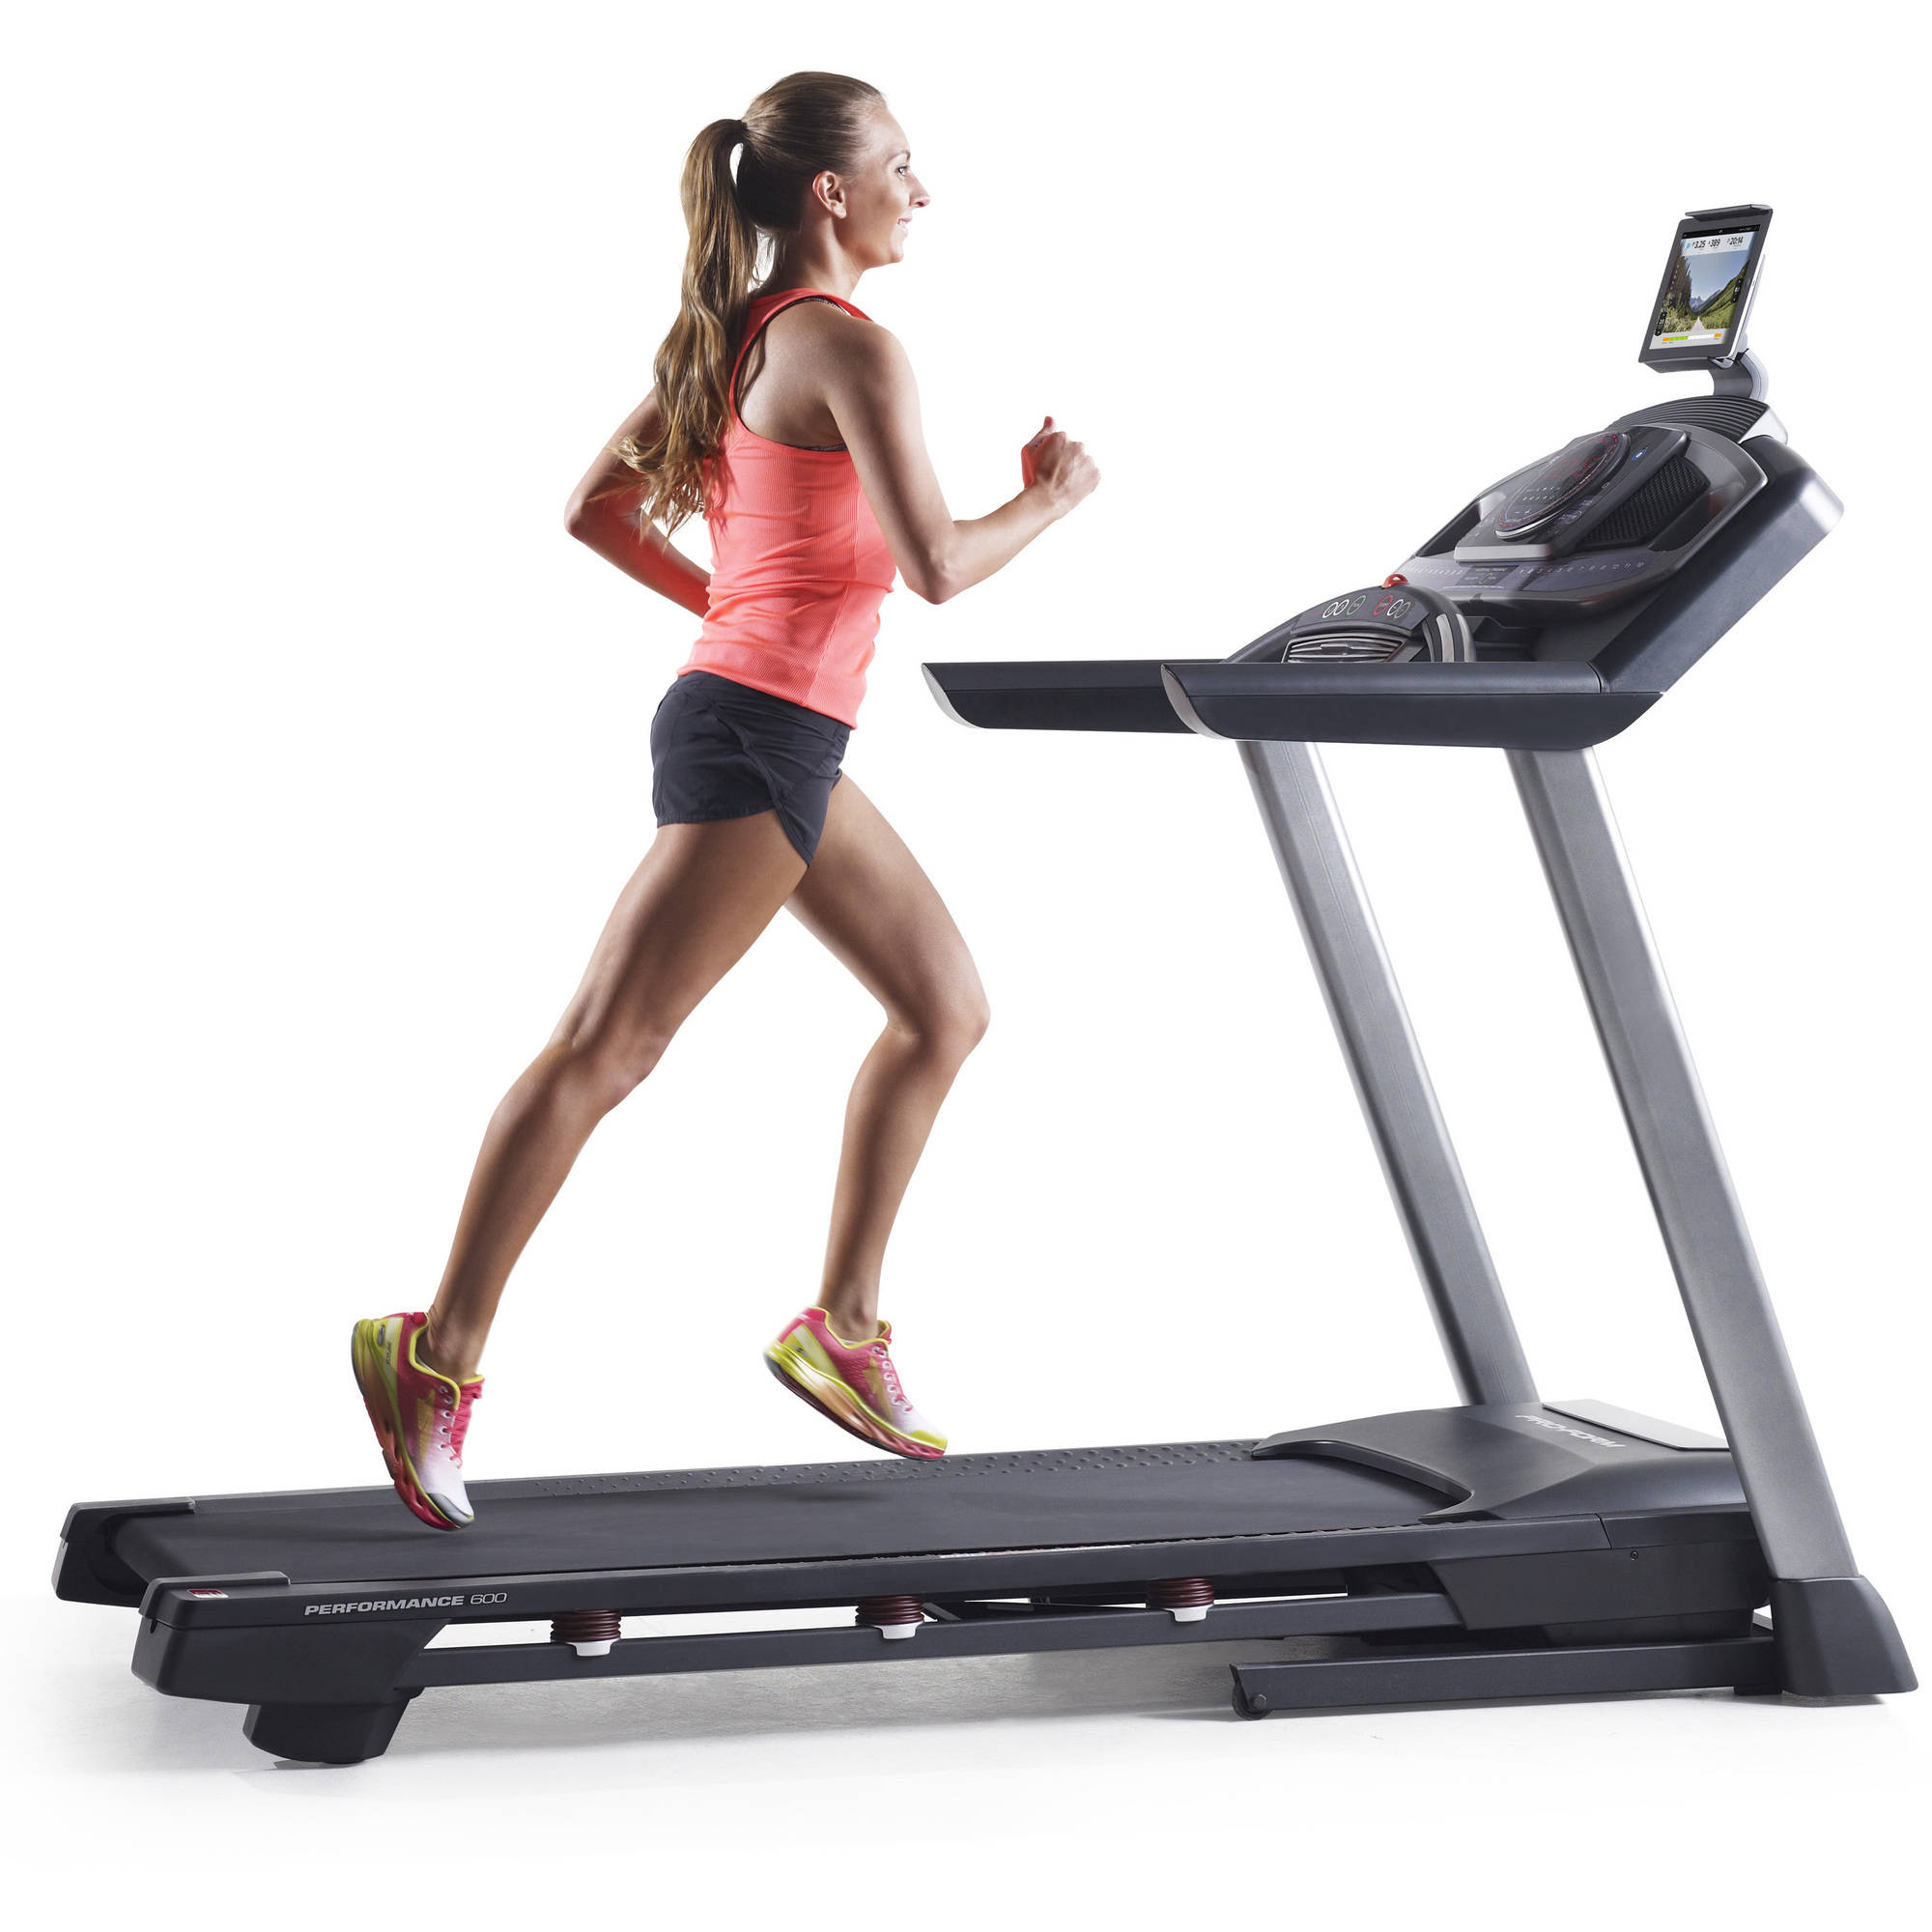 ProForm Performance 600i Treadmill by Icon Health & Fitness Inc.